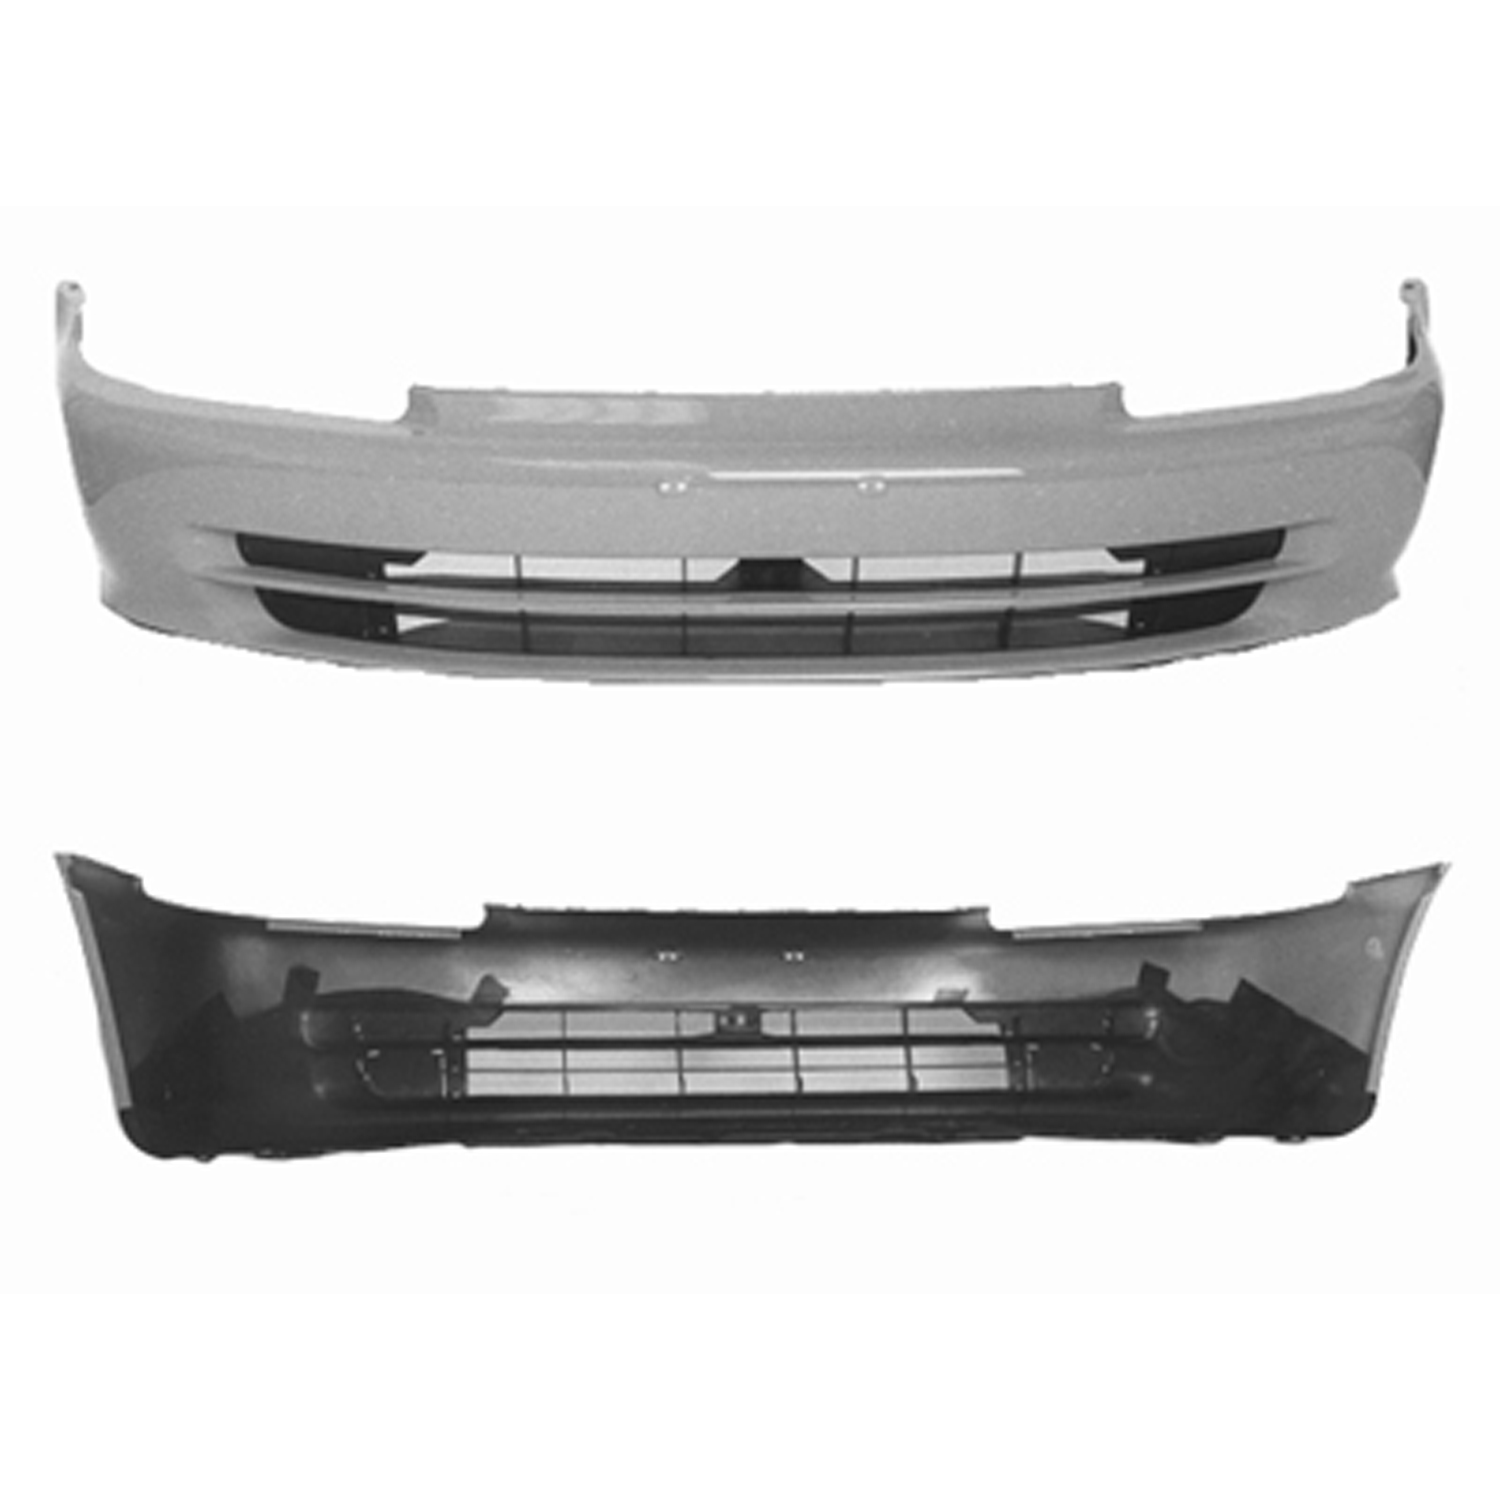 AM New Front Bumper Cover For Honda Civic 71101SR4000ZZ PRIME HO1000142